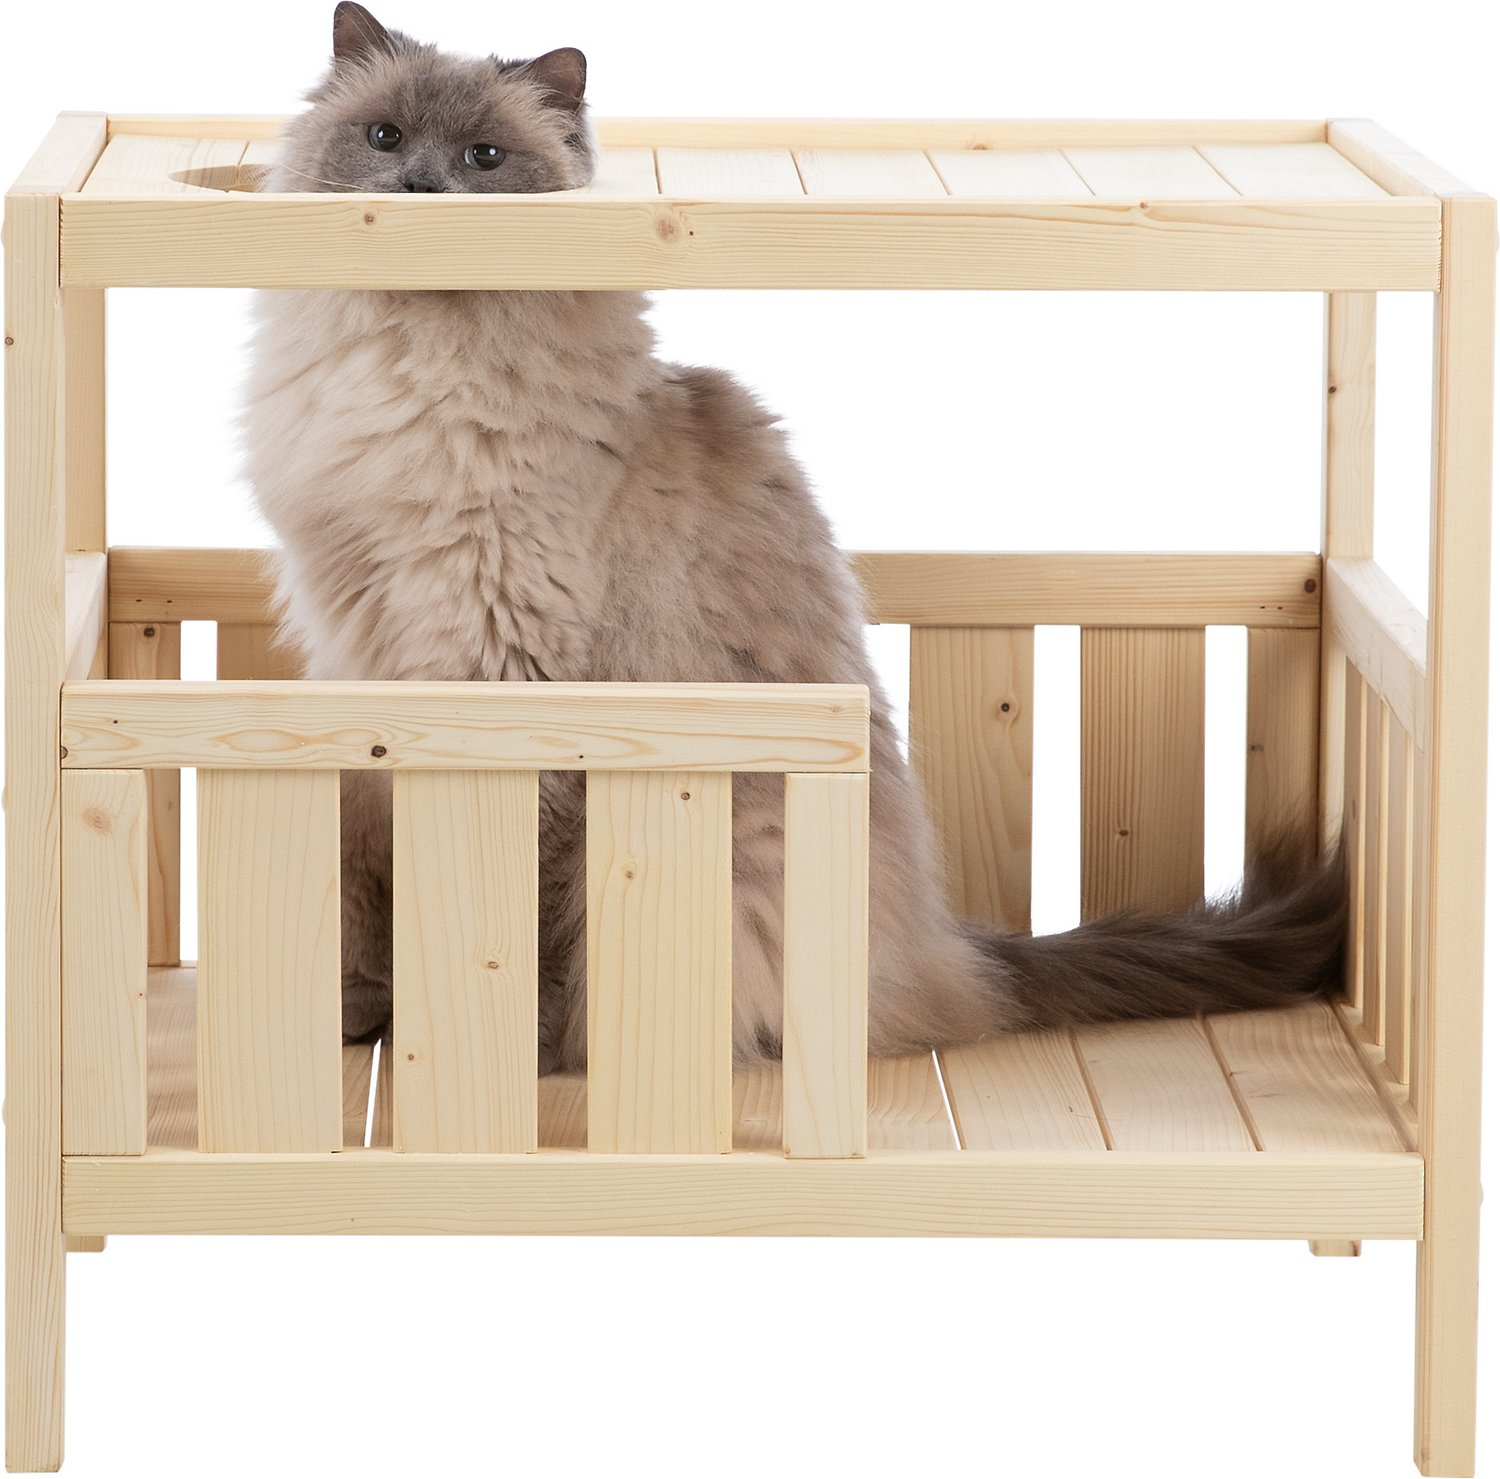 Trixie Natura Indoor Cat House Chewy Com